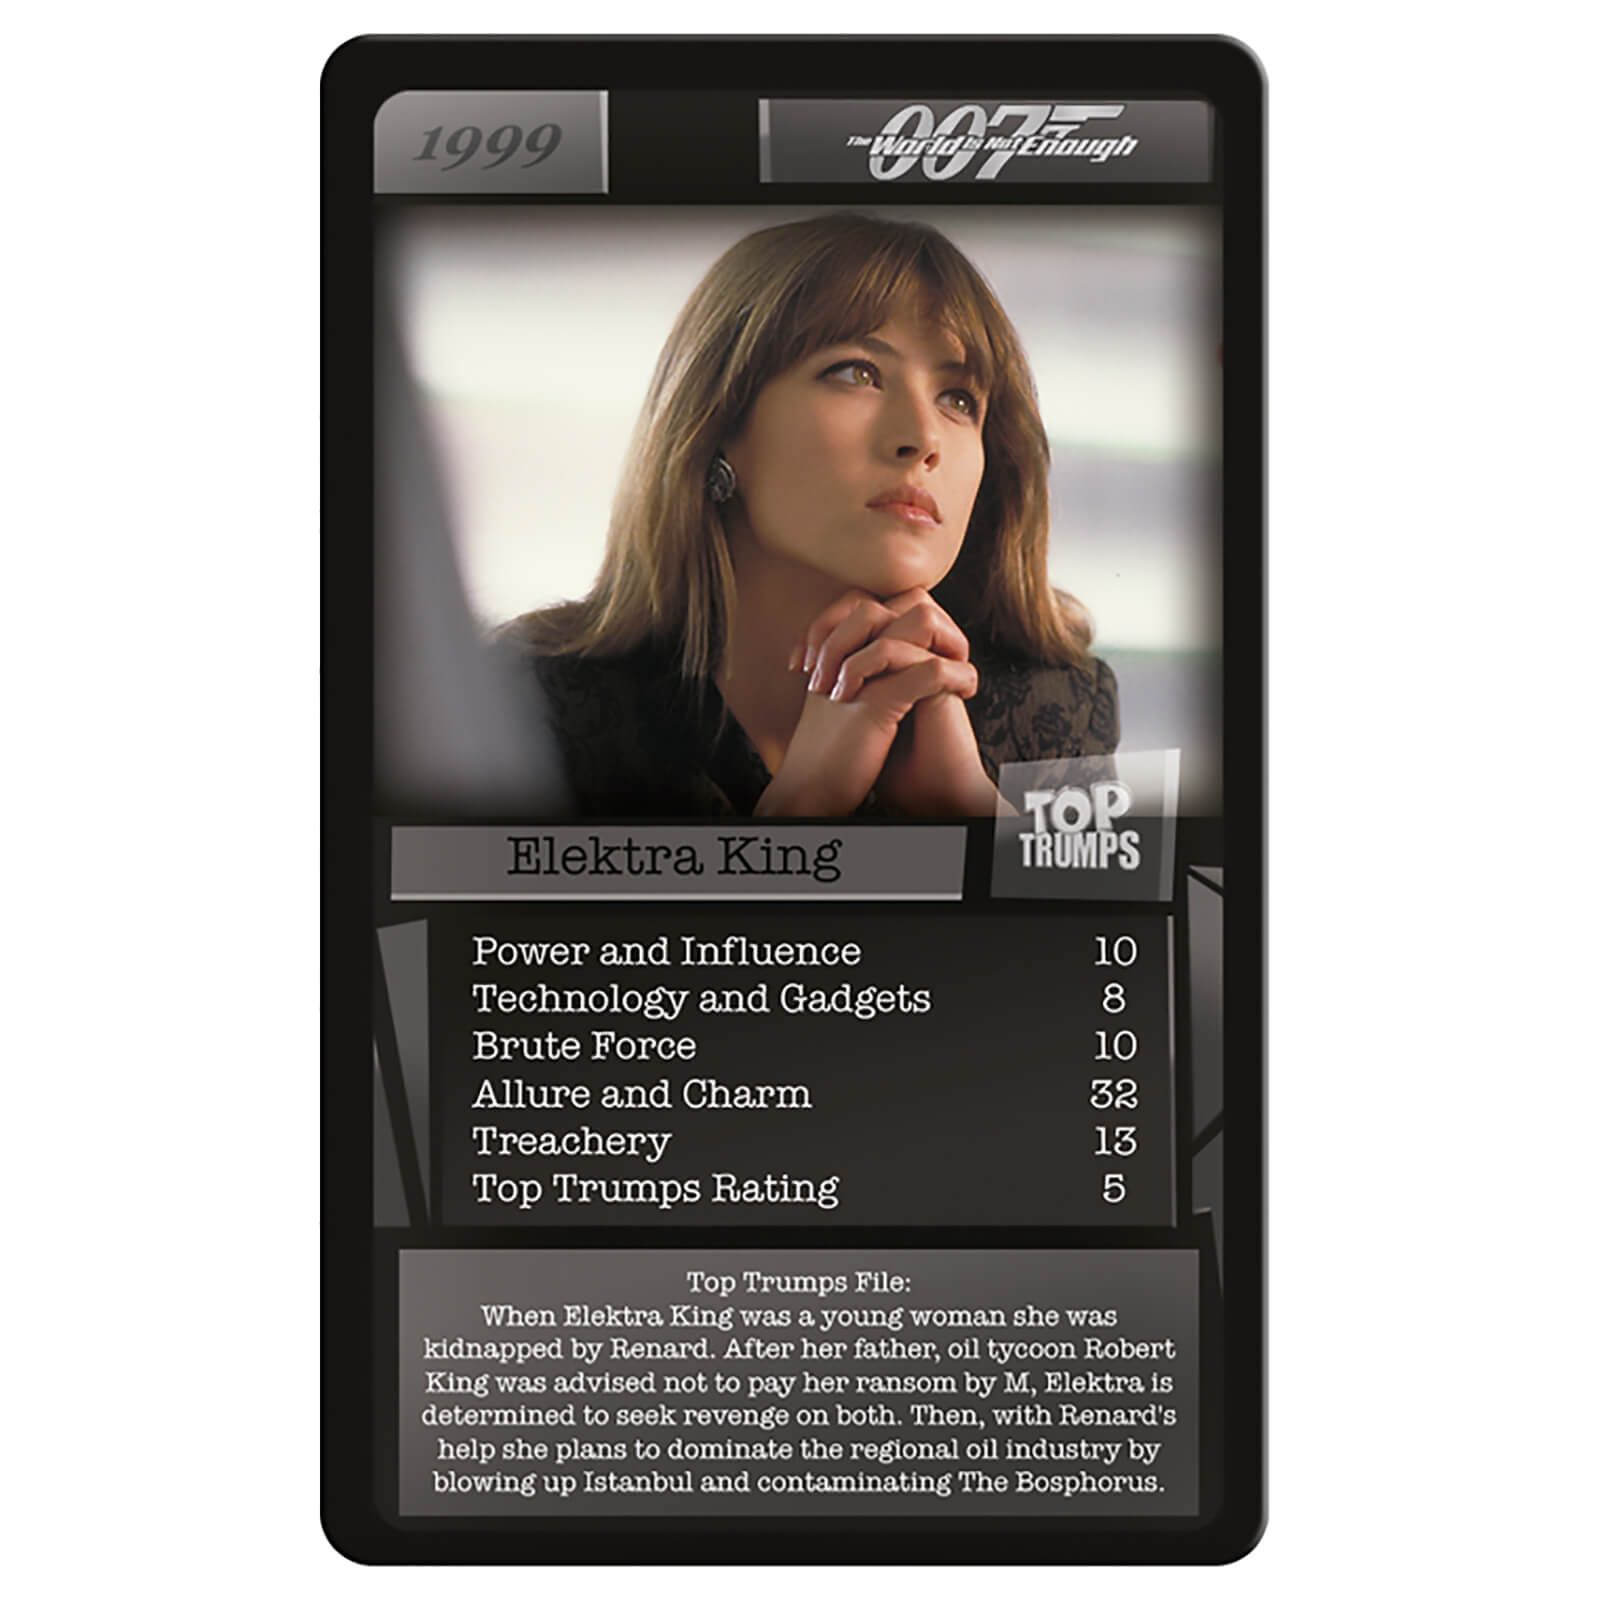 007 James Bond Edition Card Game Top Trumps